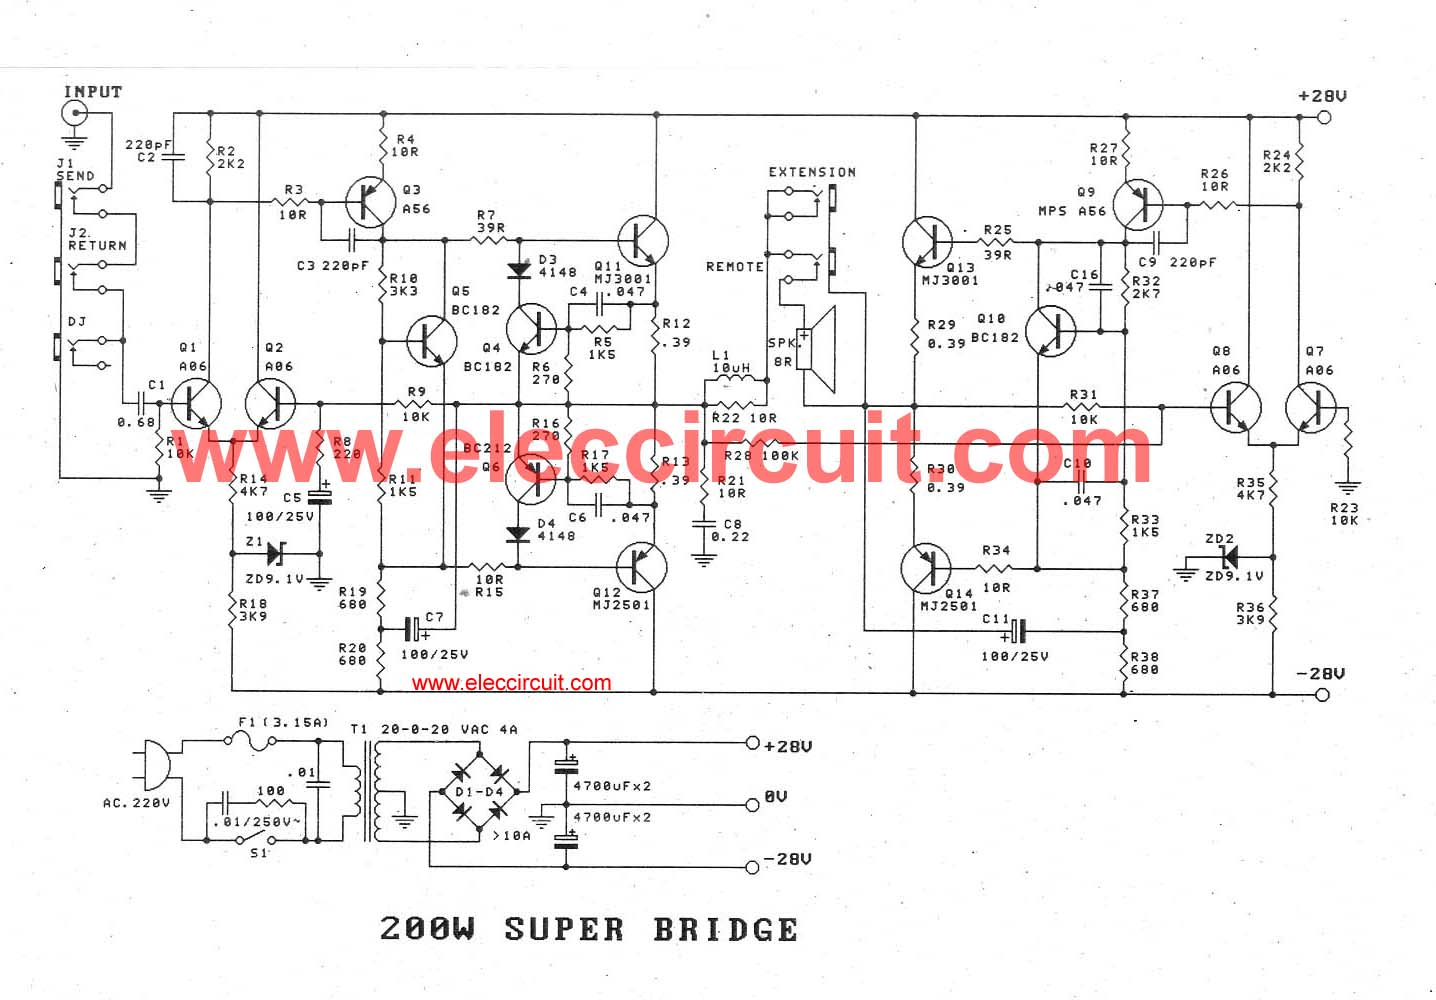 Schematic Audio Amplifier Circuit 200w - Your Wiring Diagram